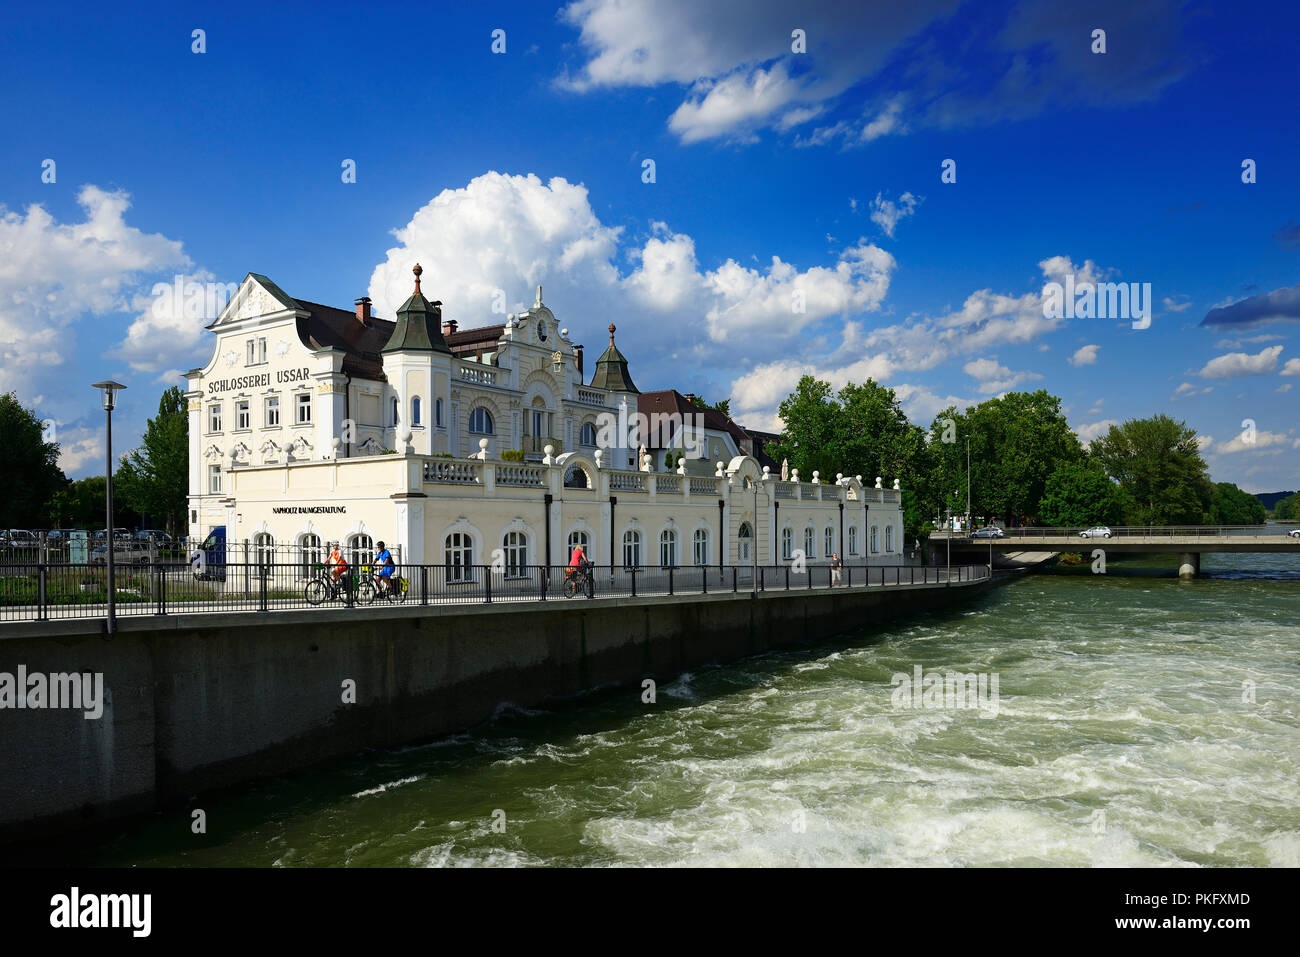 Cyclists in Landshut in front of the locksmith Ussar an der Isar, East Bavaria, Lower Bavaria, Bavaria, Germany - Stock Image